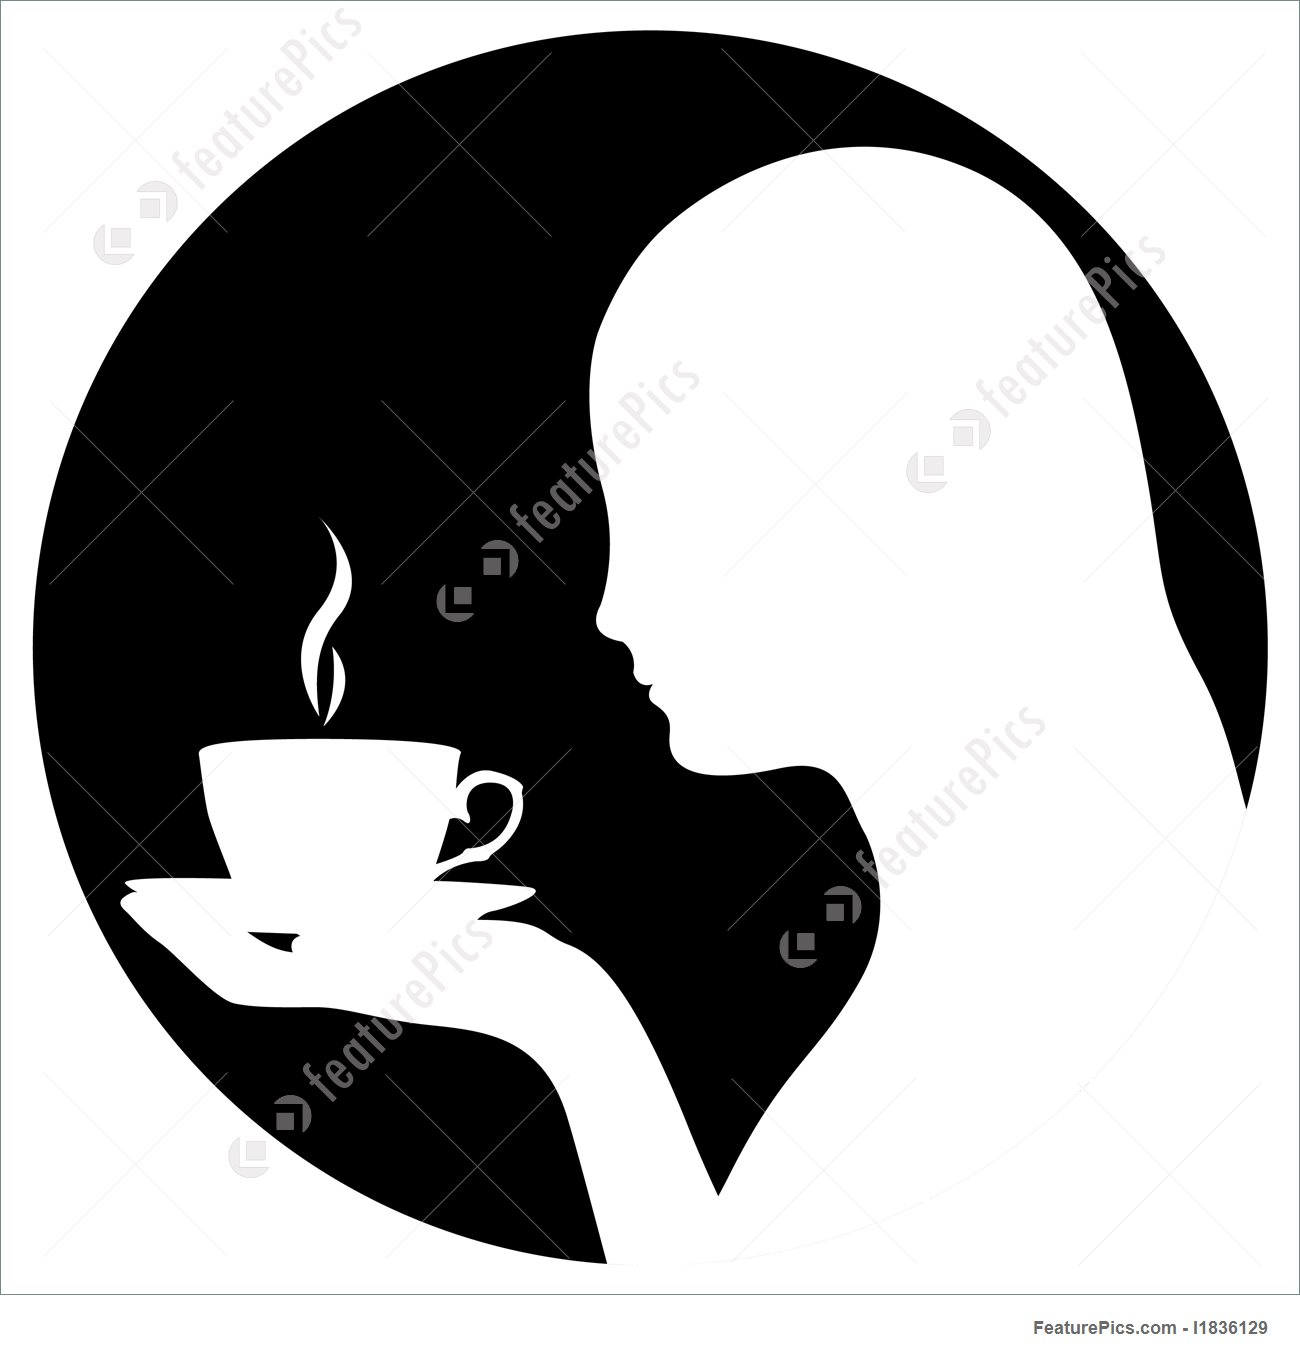 1300x1355 Silhouette Of Woman Drinking Coffee Stock Illustration I1836129